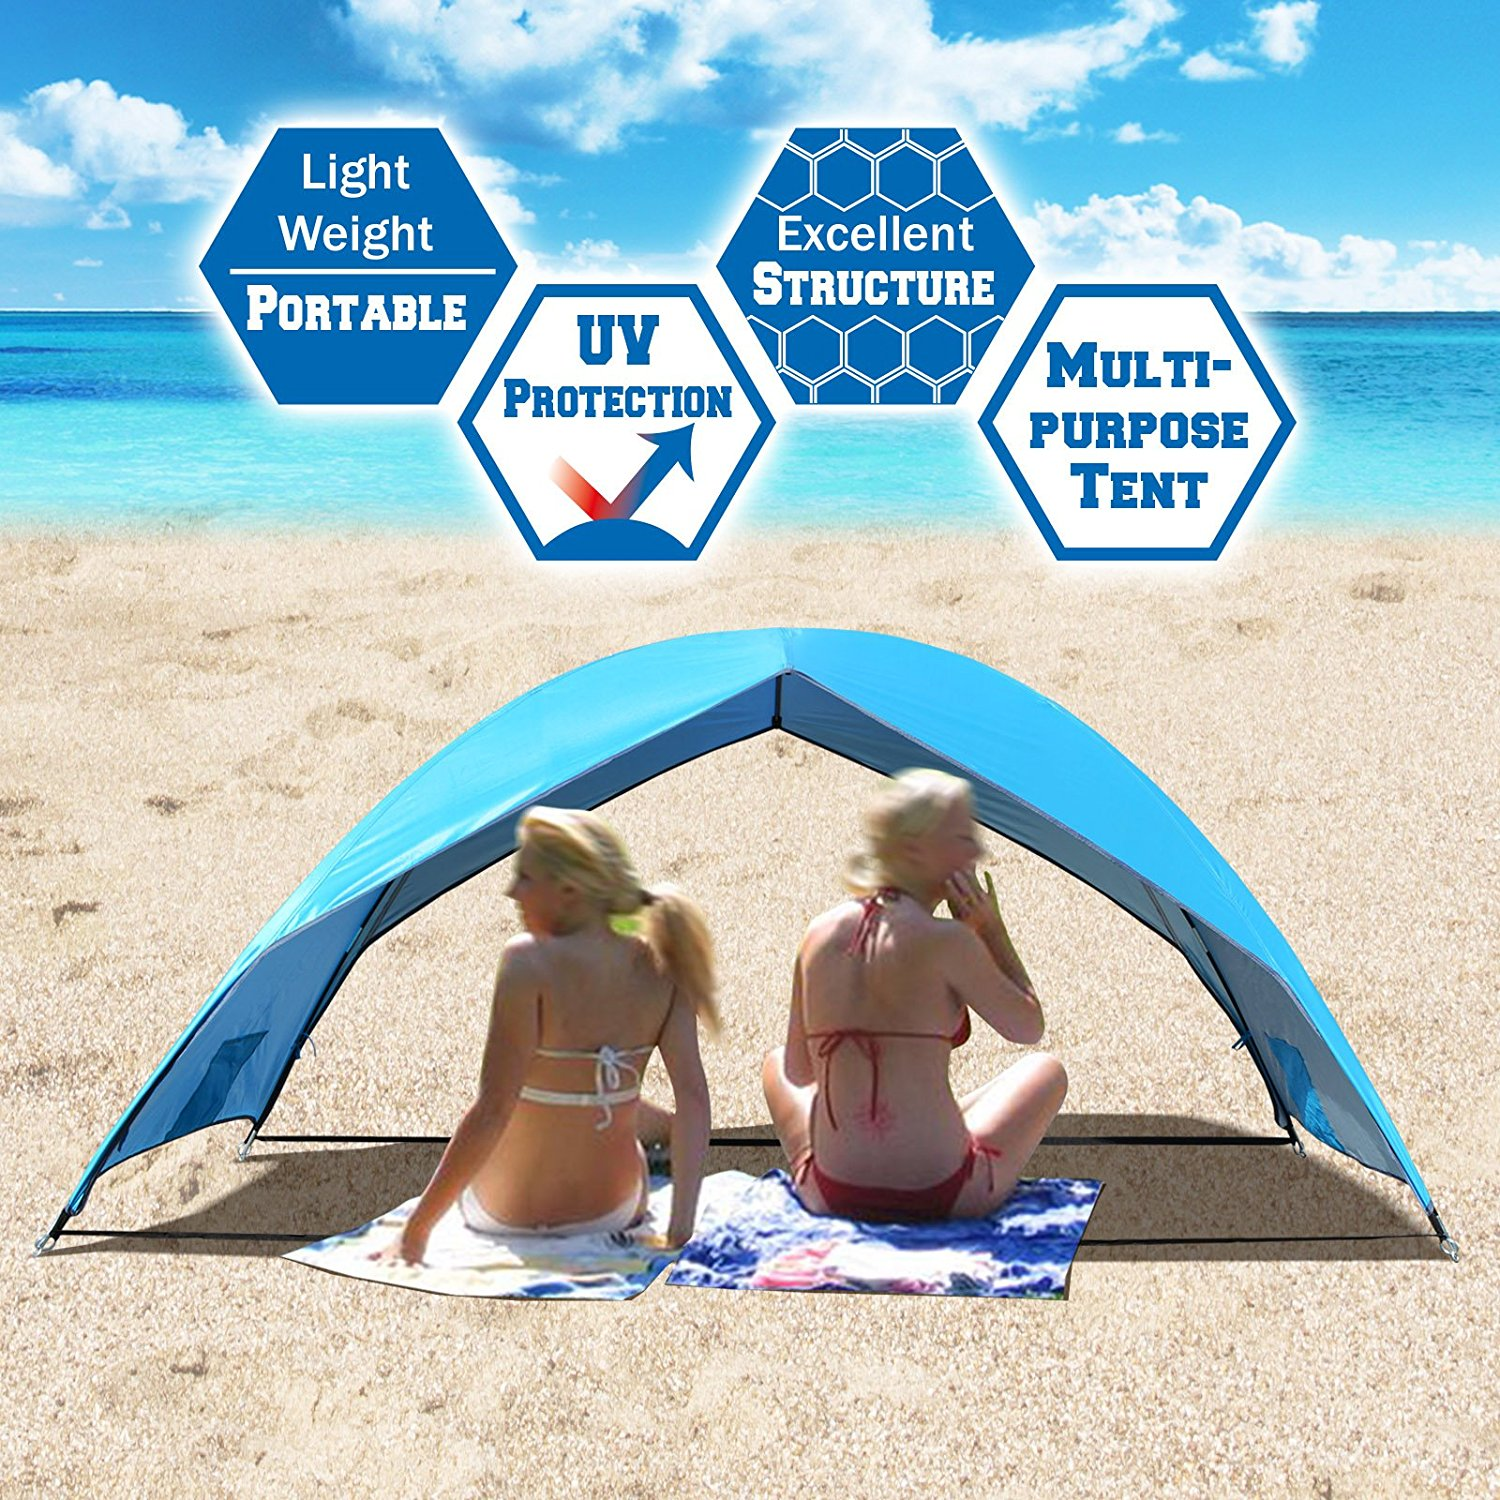 Strong Camel Portable Beach Tent Sun Shade Shelter Outdoor Hiking Travel Camping Napping Canopy 2 Persons